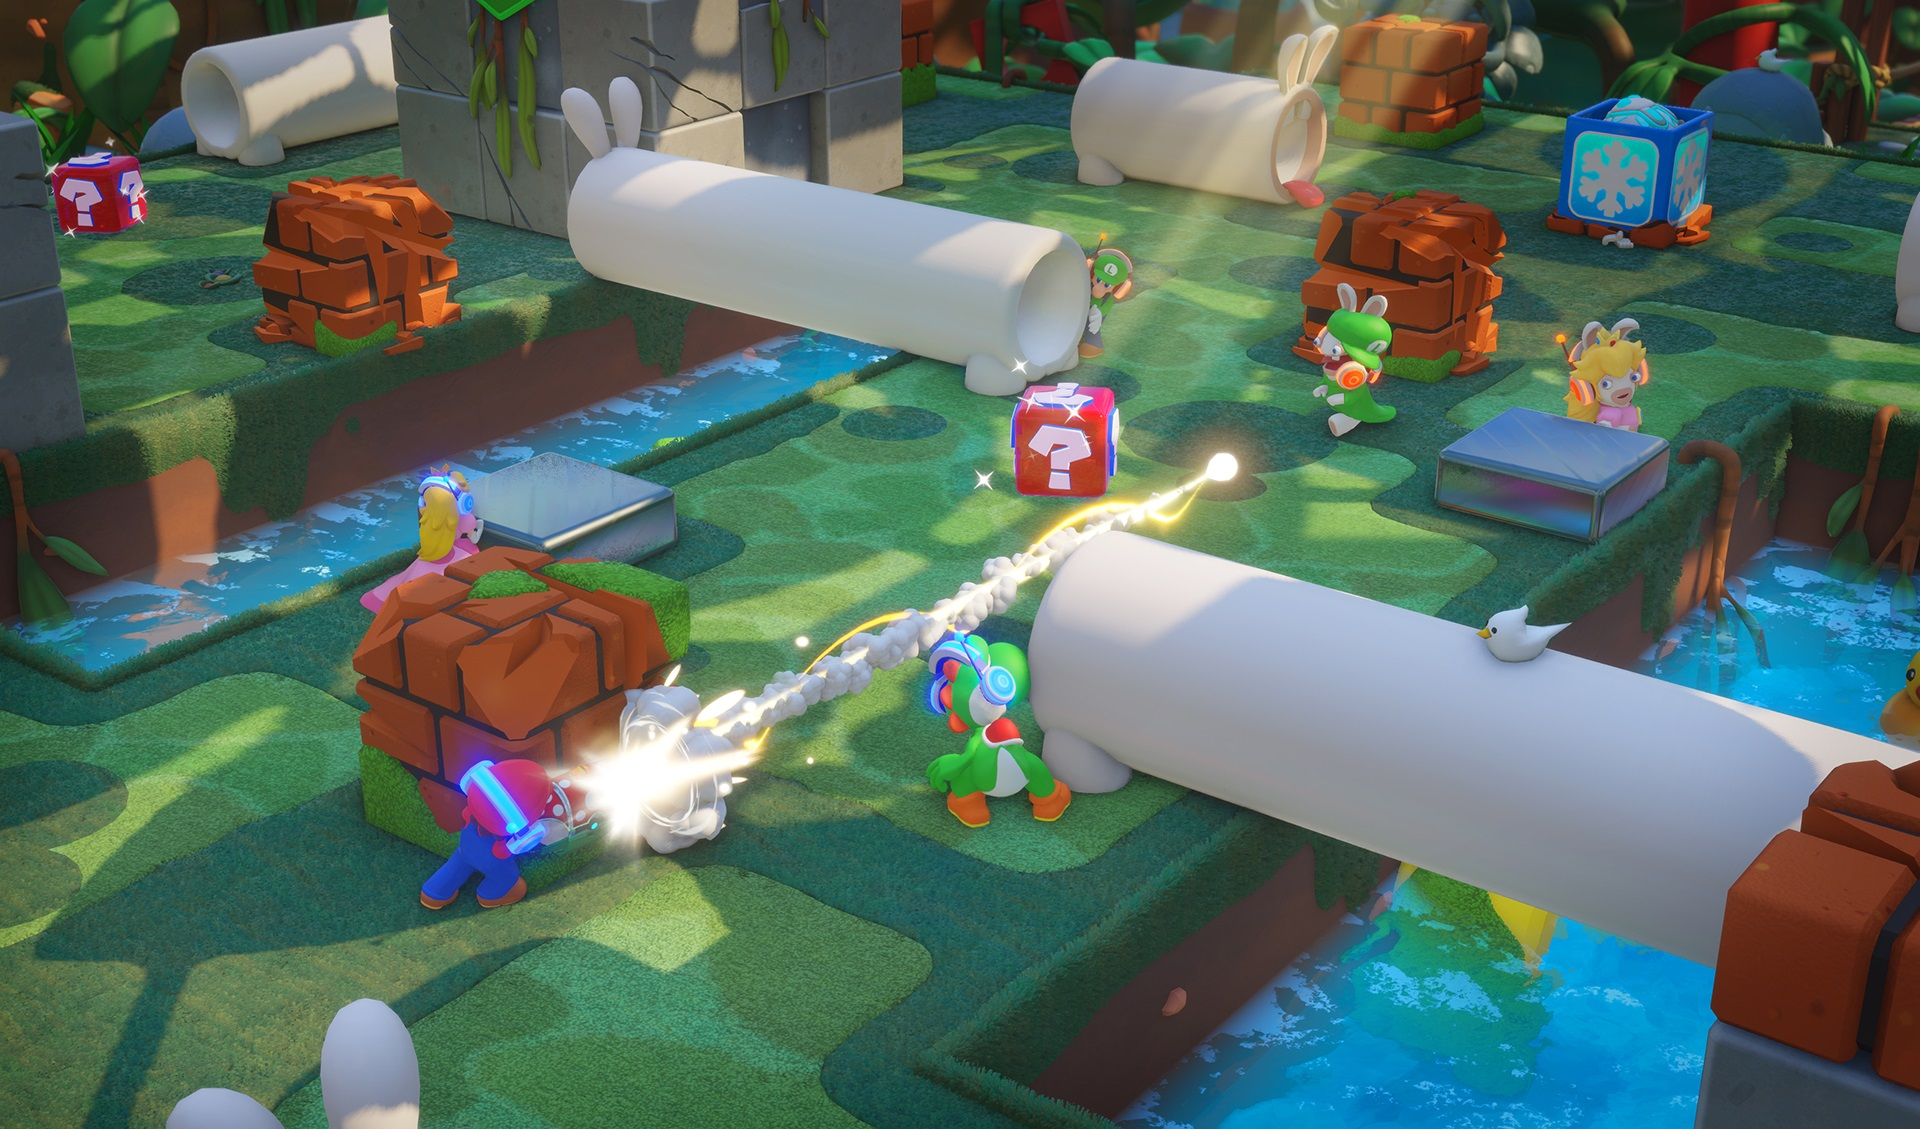 Mario + Rabbids: Kingdom Battle DLC Adds Free PvP Mode, Out Tomorrow